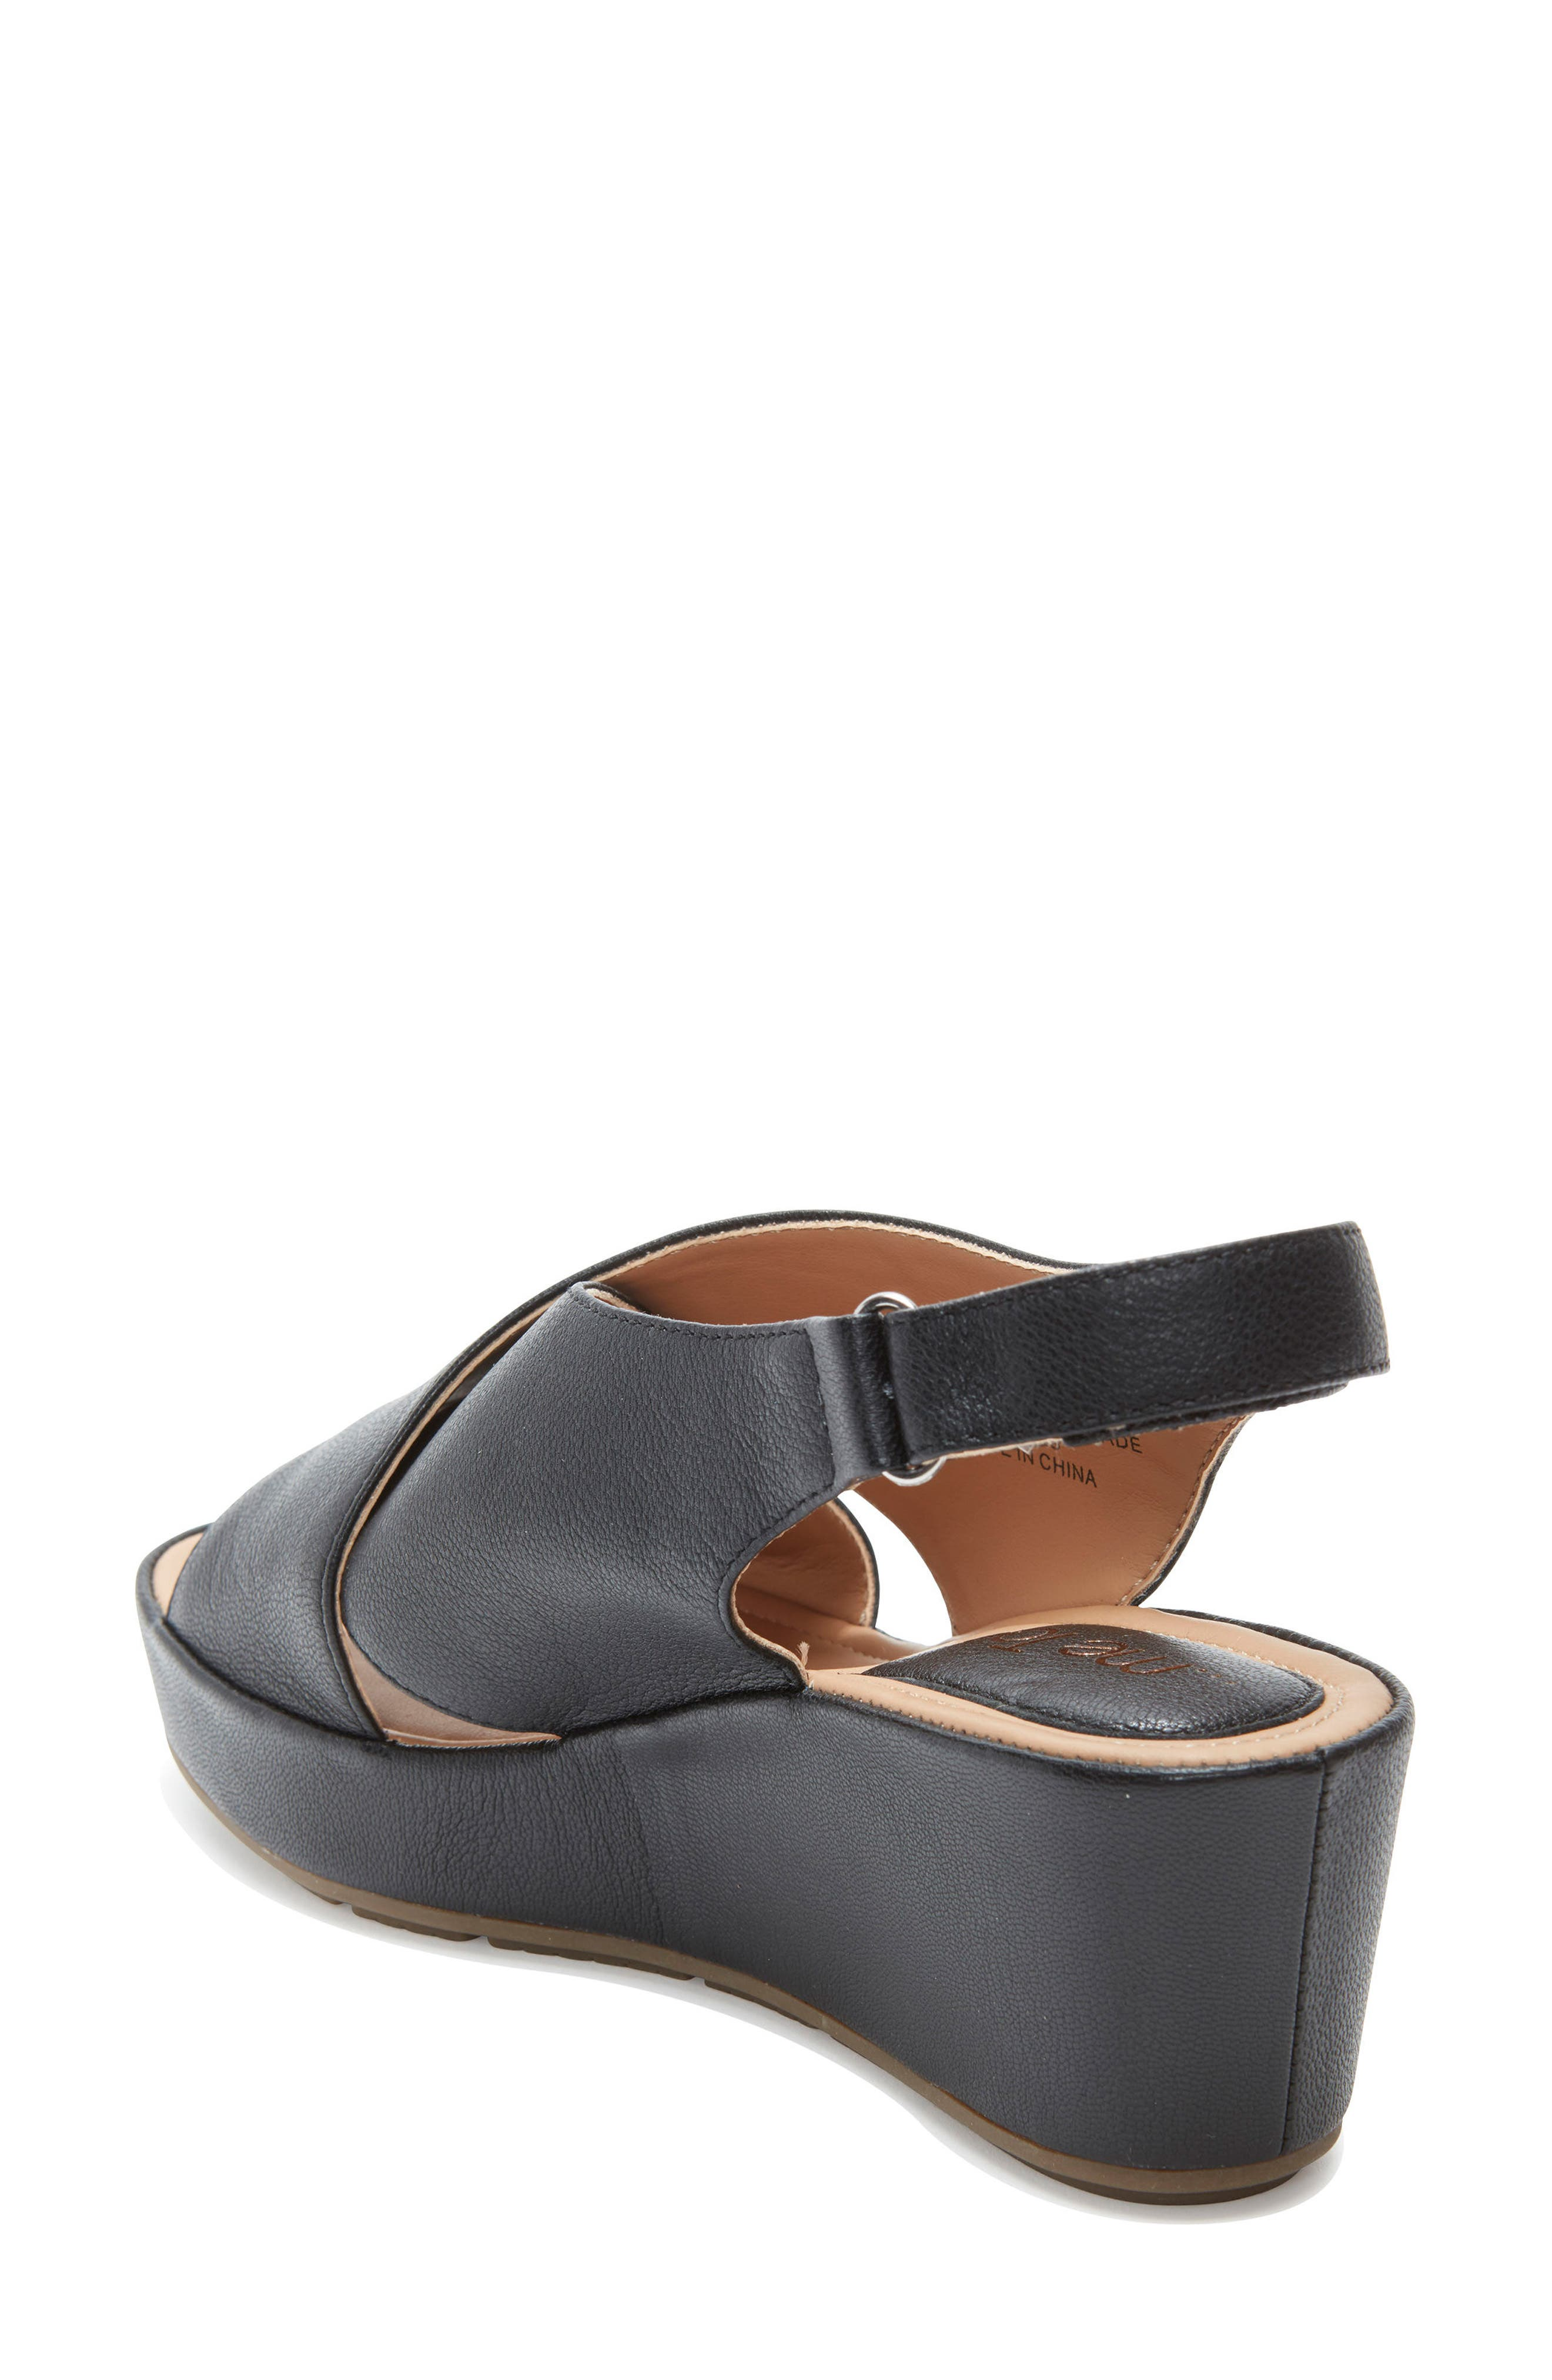 ME TOO, Arena Wedge Sandal, Alternate thumbnail 2, color, BLACK LEATHER